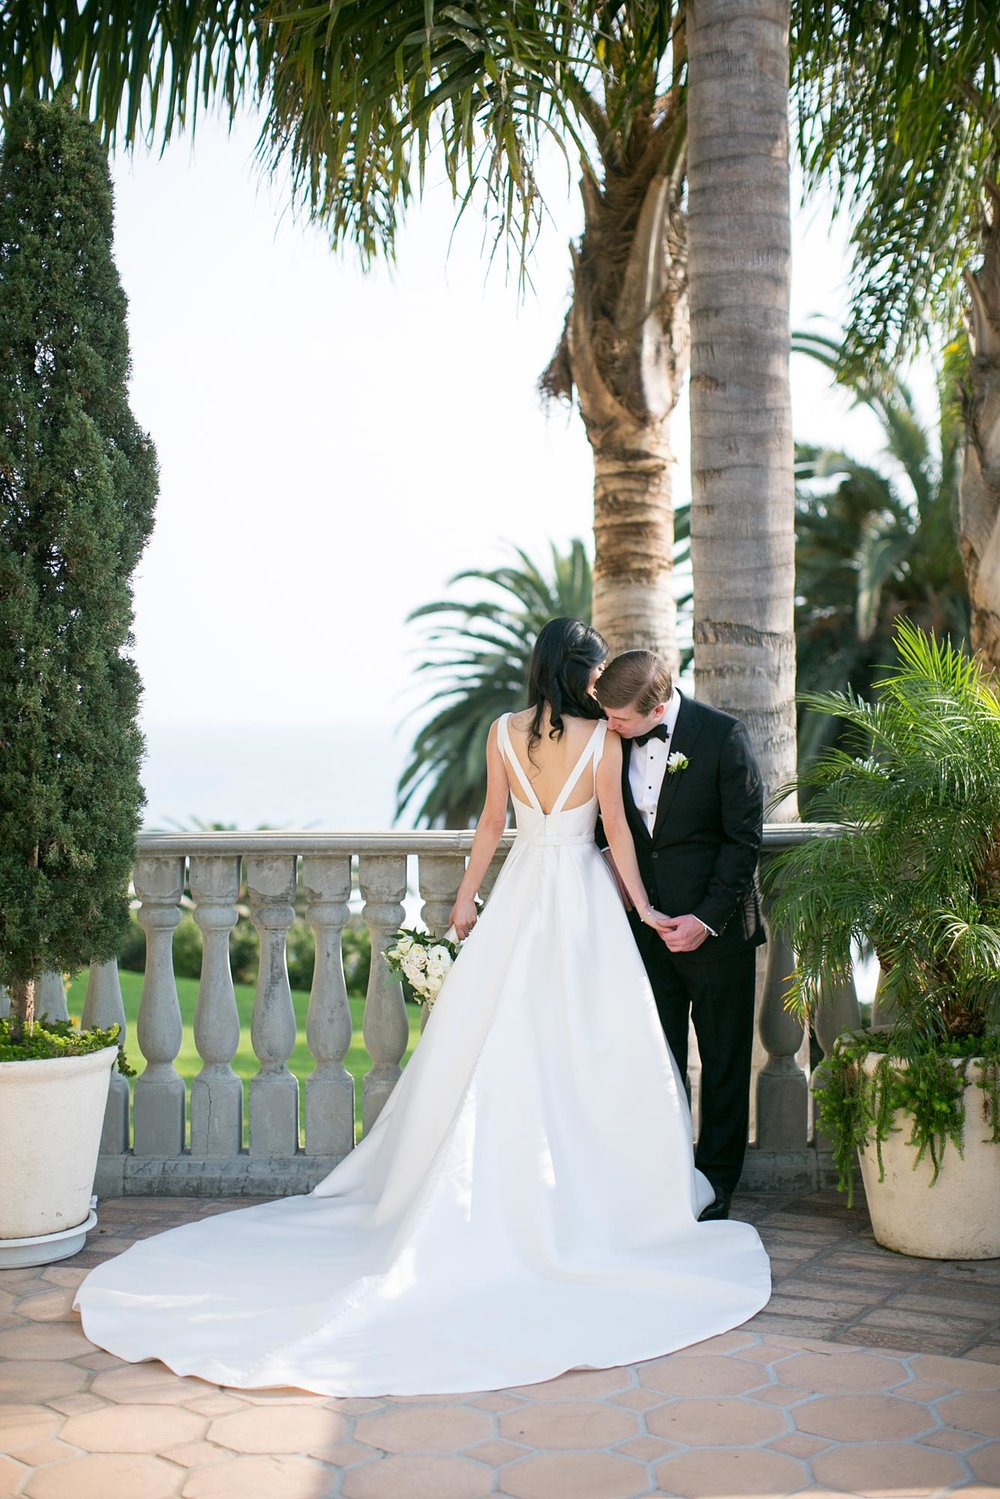 Bel Air Bay Club Wedding | Miki & Sonja Photography | mikiandsonja.com